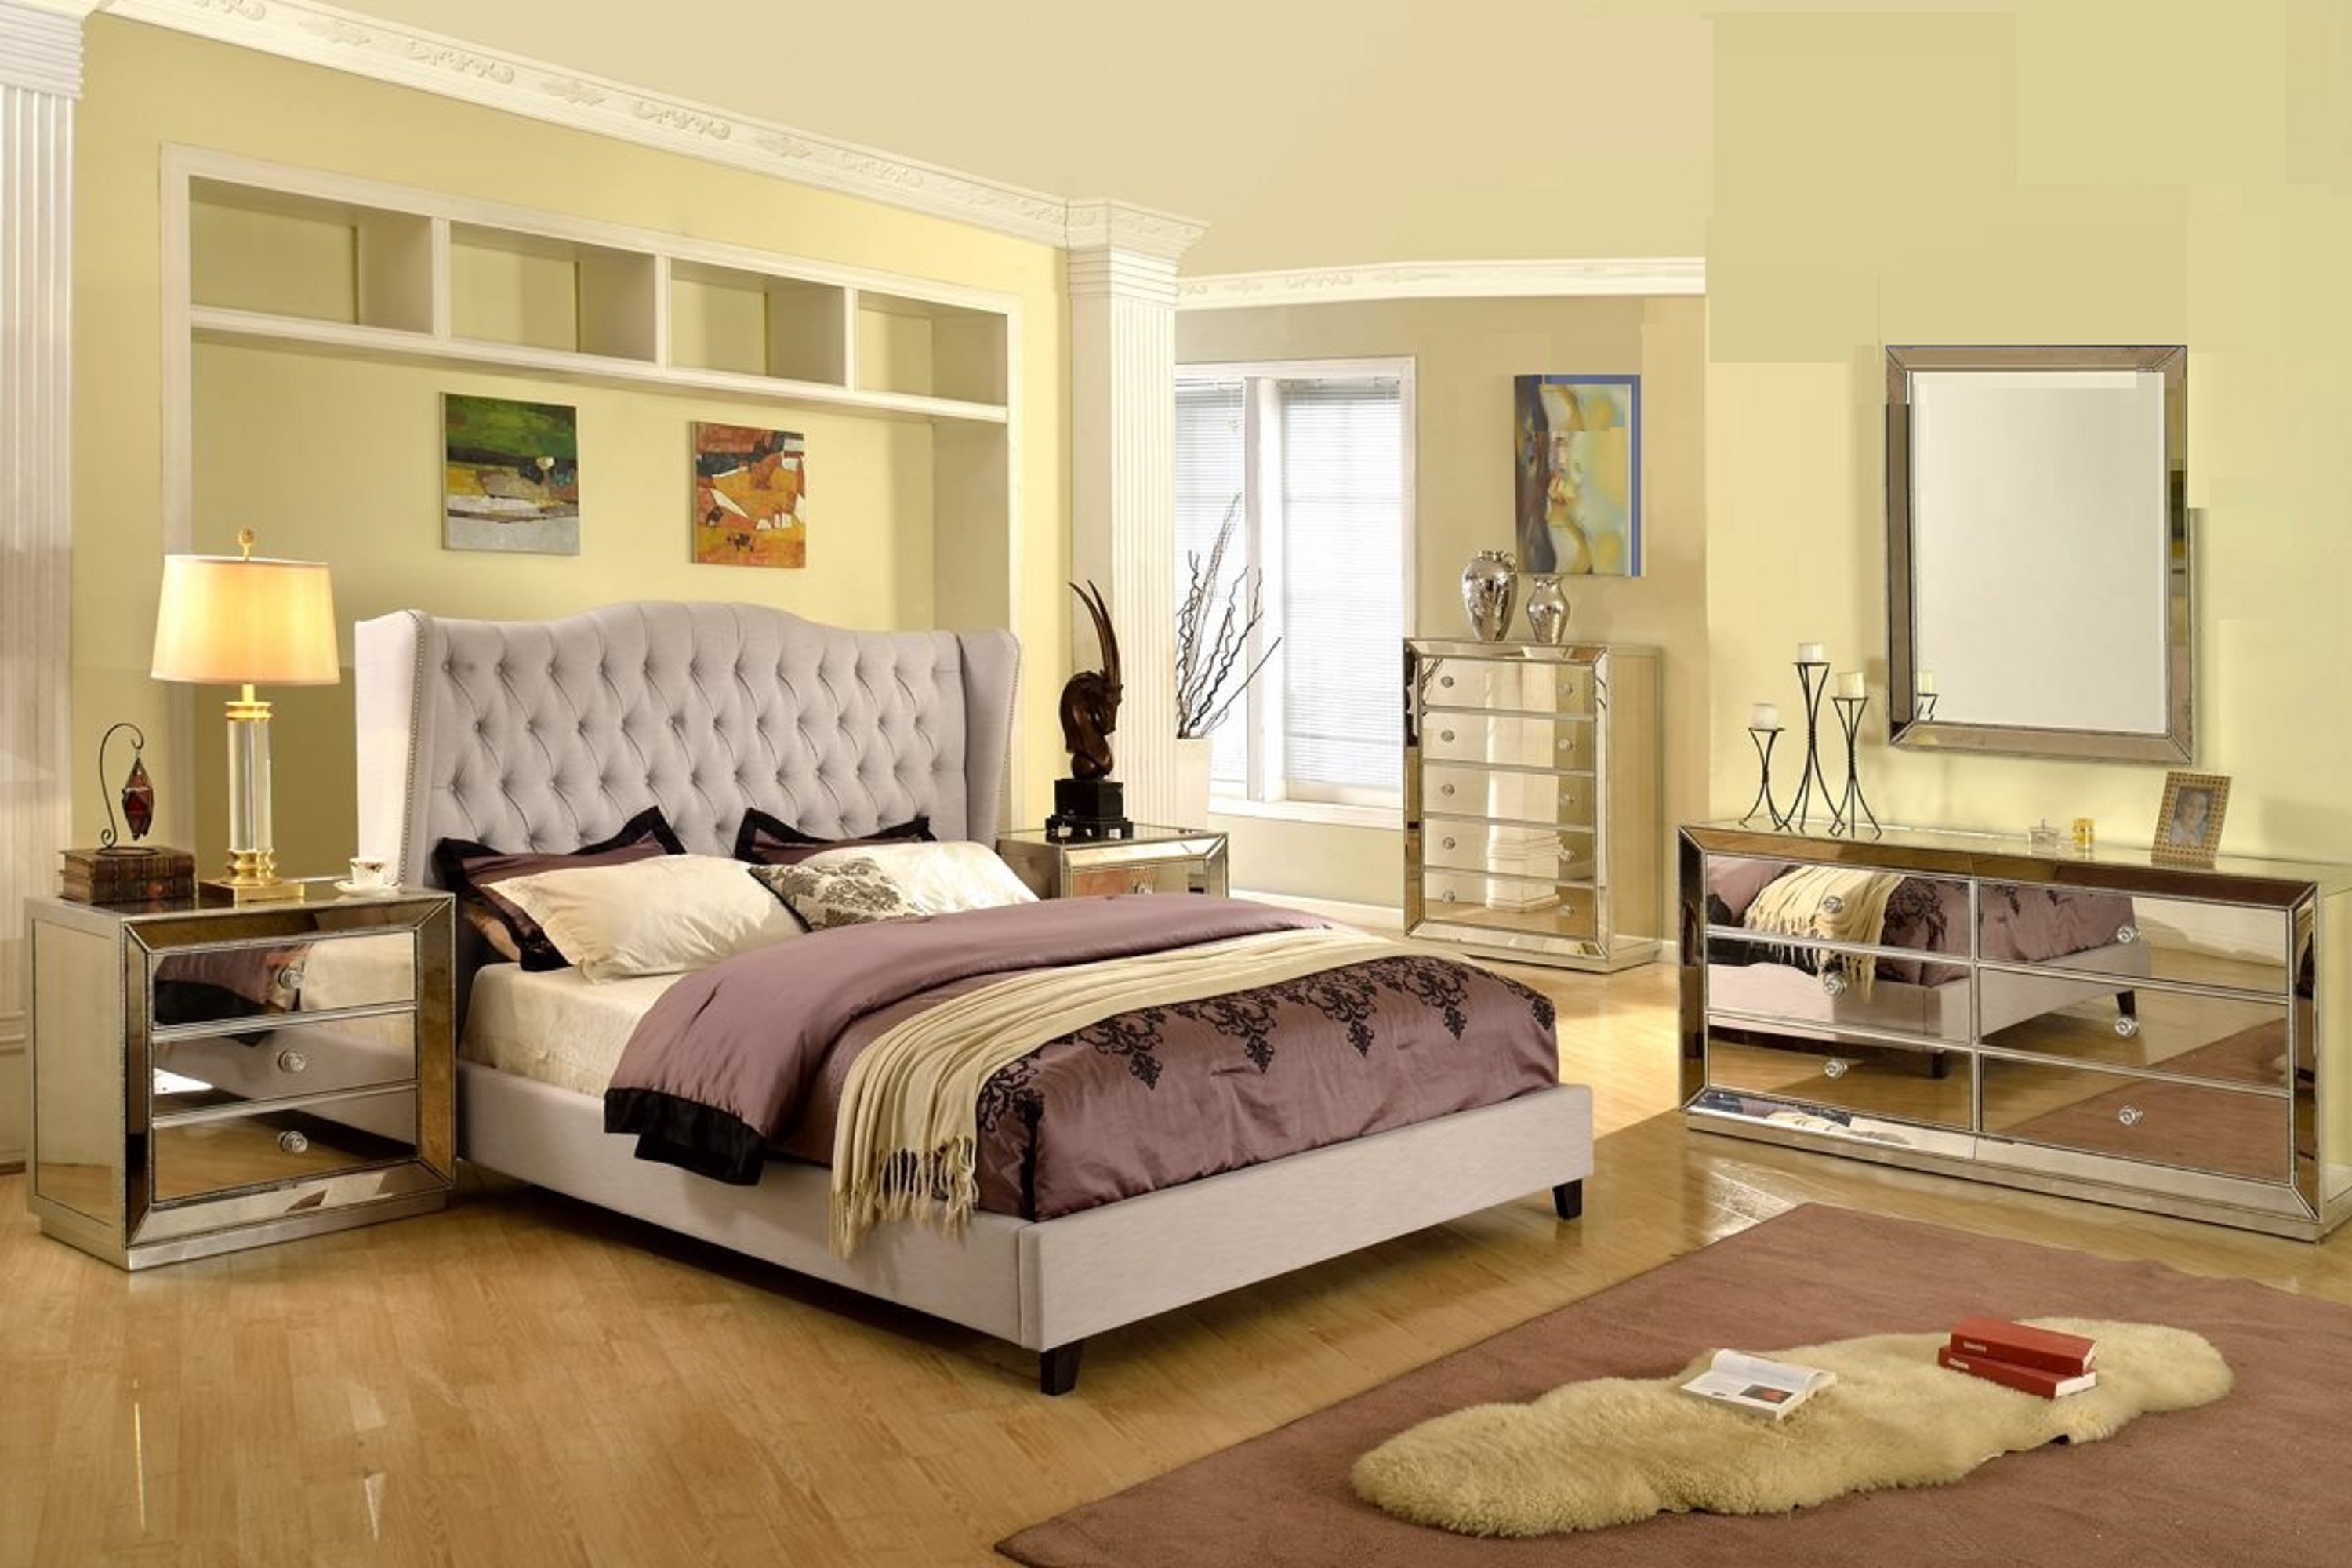 Formal Silver Mirrored Jameson Bedroom Set Taupe Color California King Size  Bed Wing Back Linen Blend Tufted HB W Classic Dresser Mirror Nightstand ...